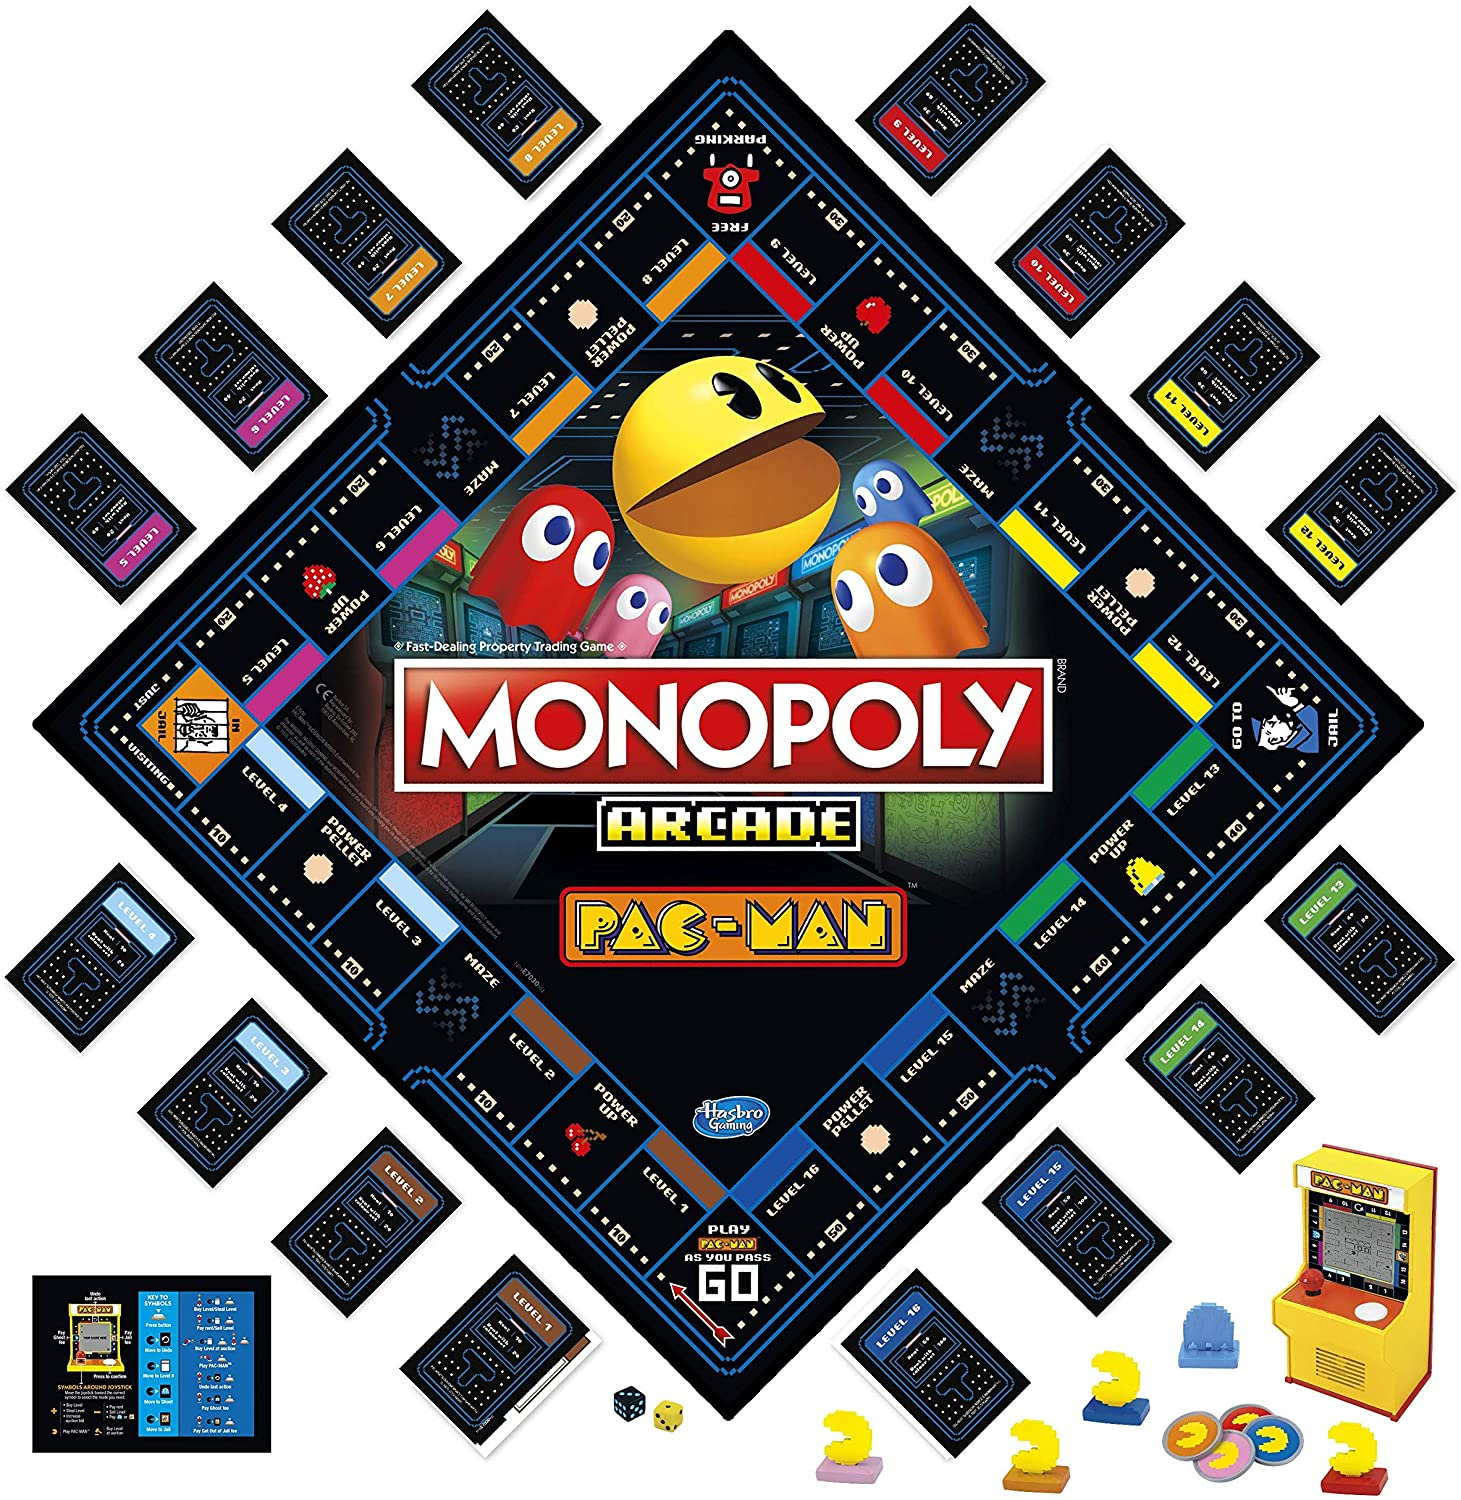 PAC-MAN Monopoly coming soon